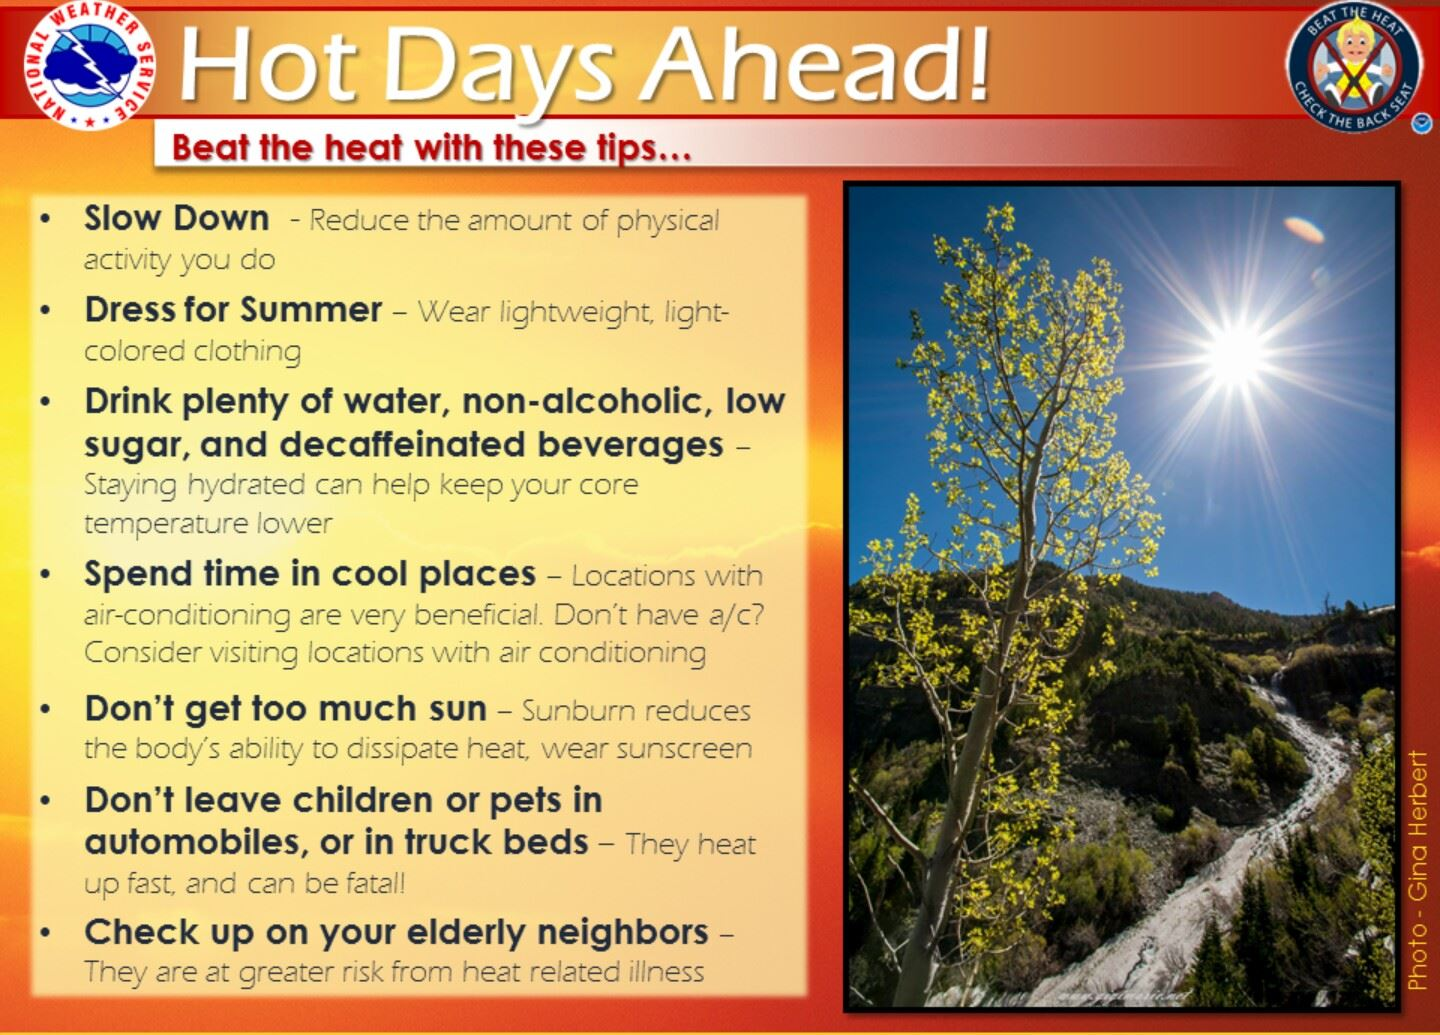 Hot Days Ahead, Beat the Heat